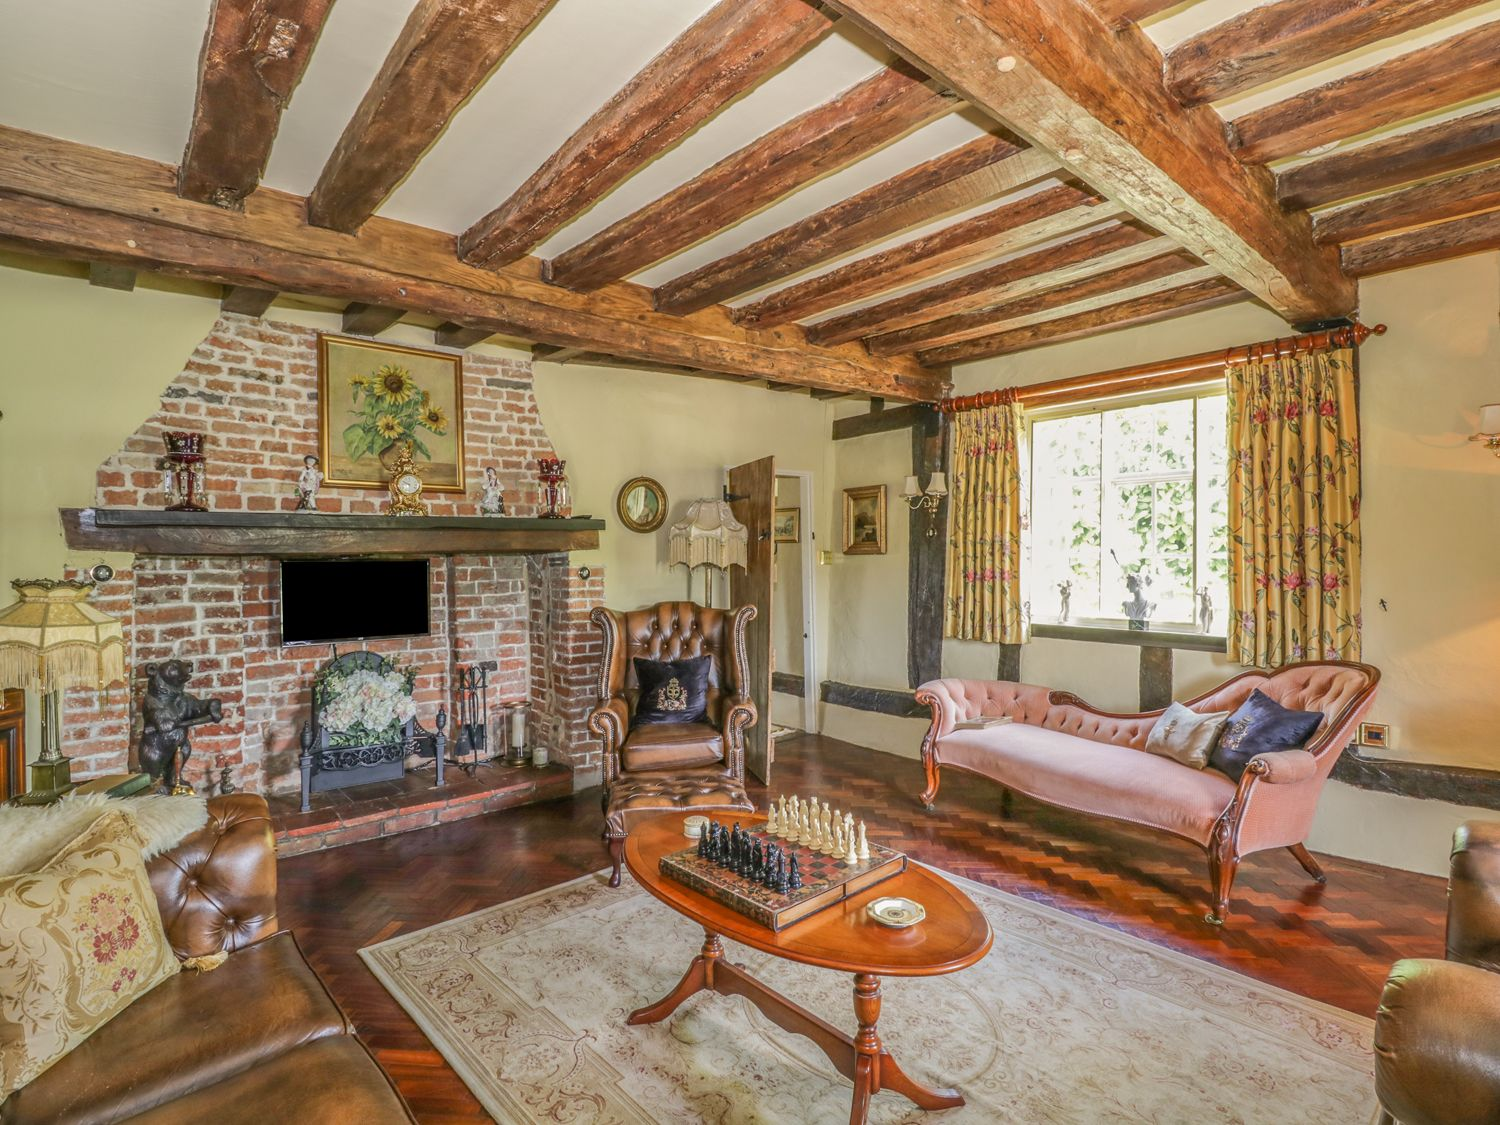 Holiday Cottages in Suffolk: Waveney Cottage in Harleston | sykescottages.co.uk